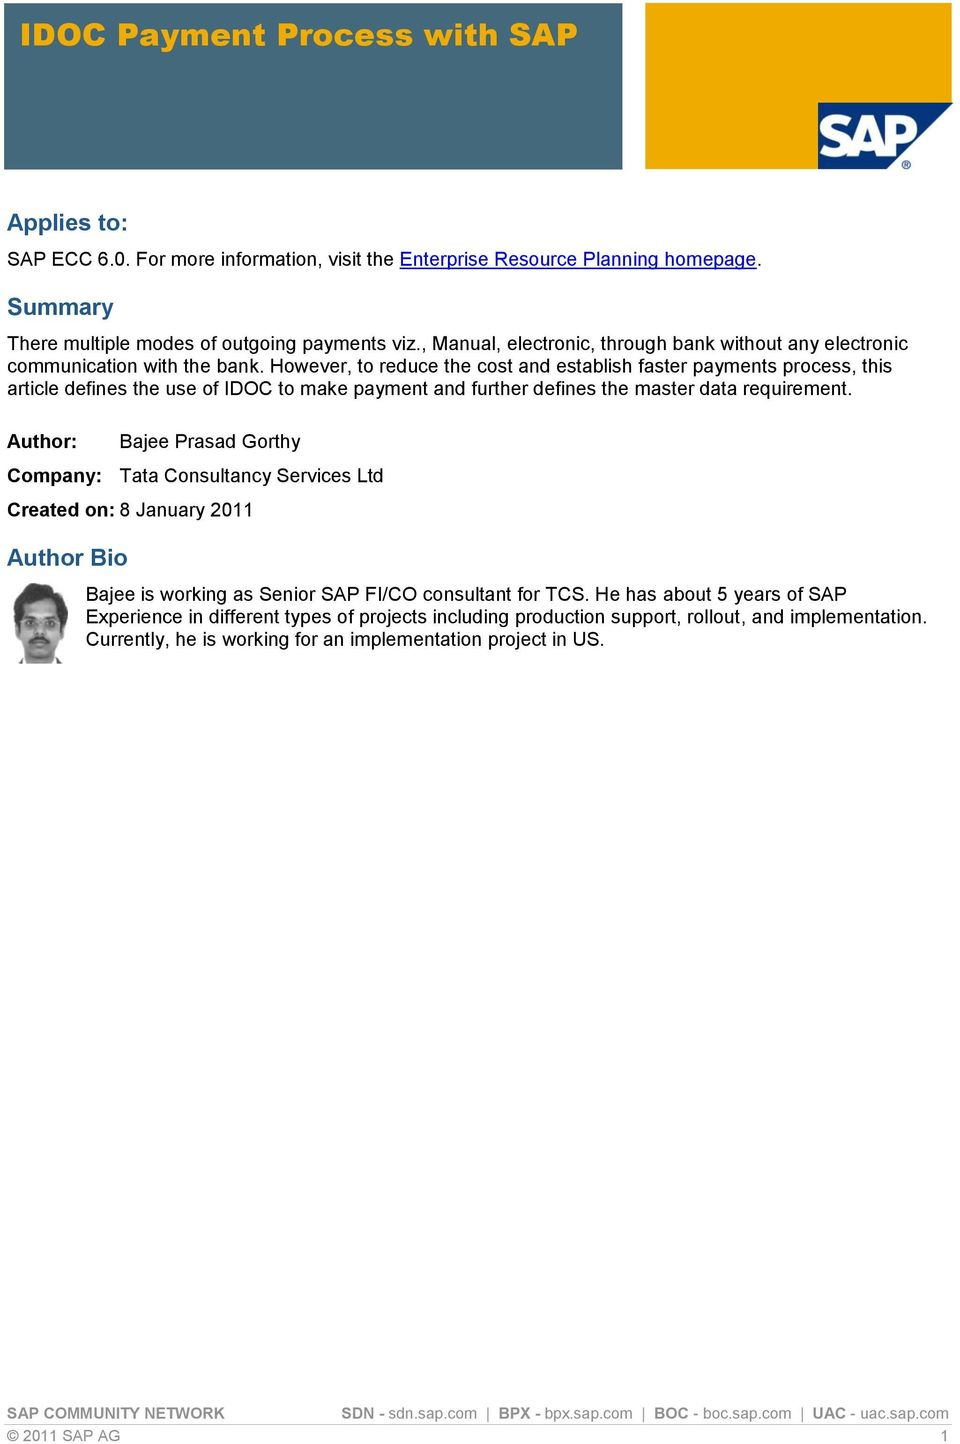 IDOC Payment Process with SAP - PDF